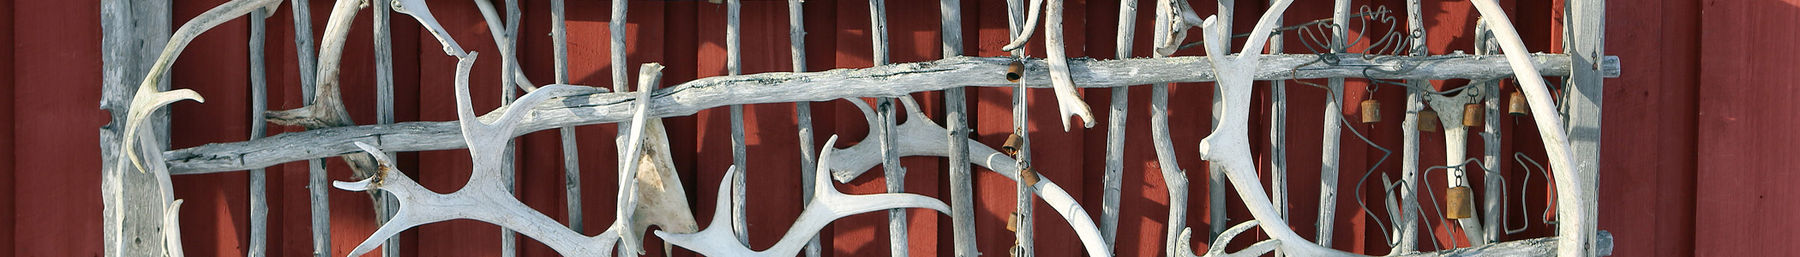 Antlers of reindeer at a farm in Inari